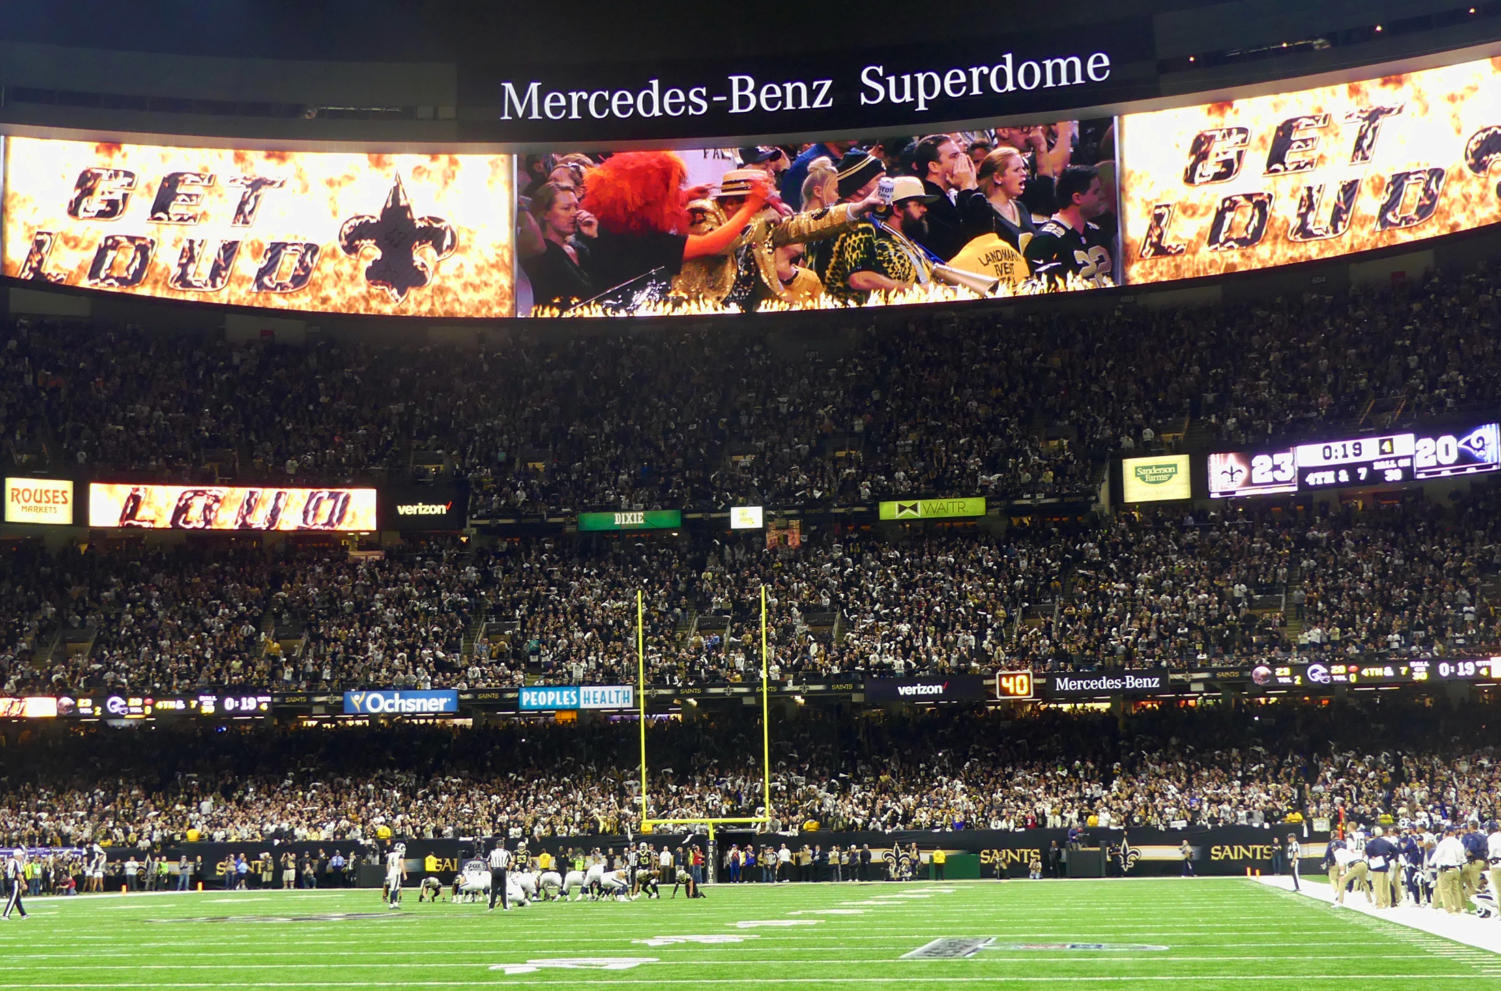 New+Orleans+Saints+fans+filled+the+Superdome+for+the+NFC+Championship.+Photo+credit%3A+Olivia+Ledet